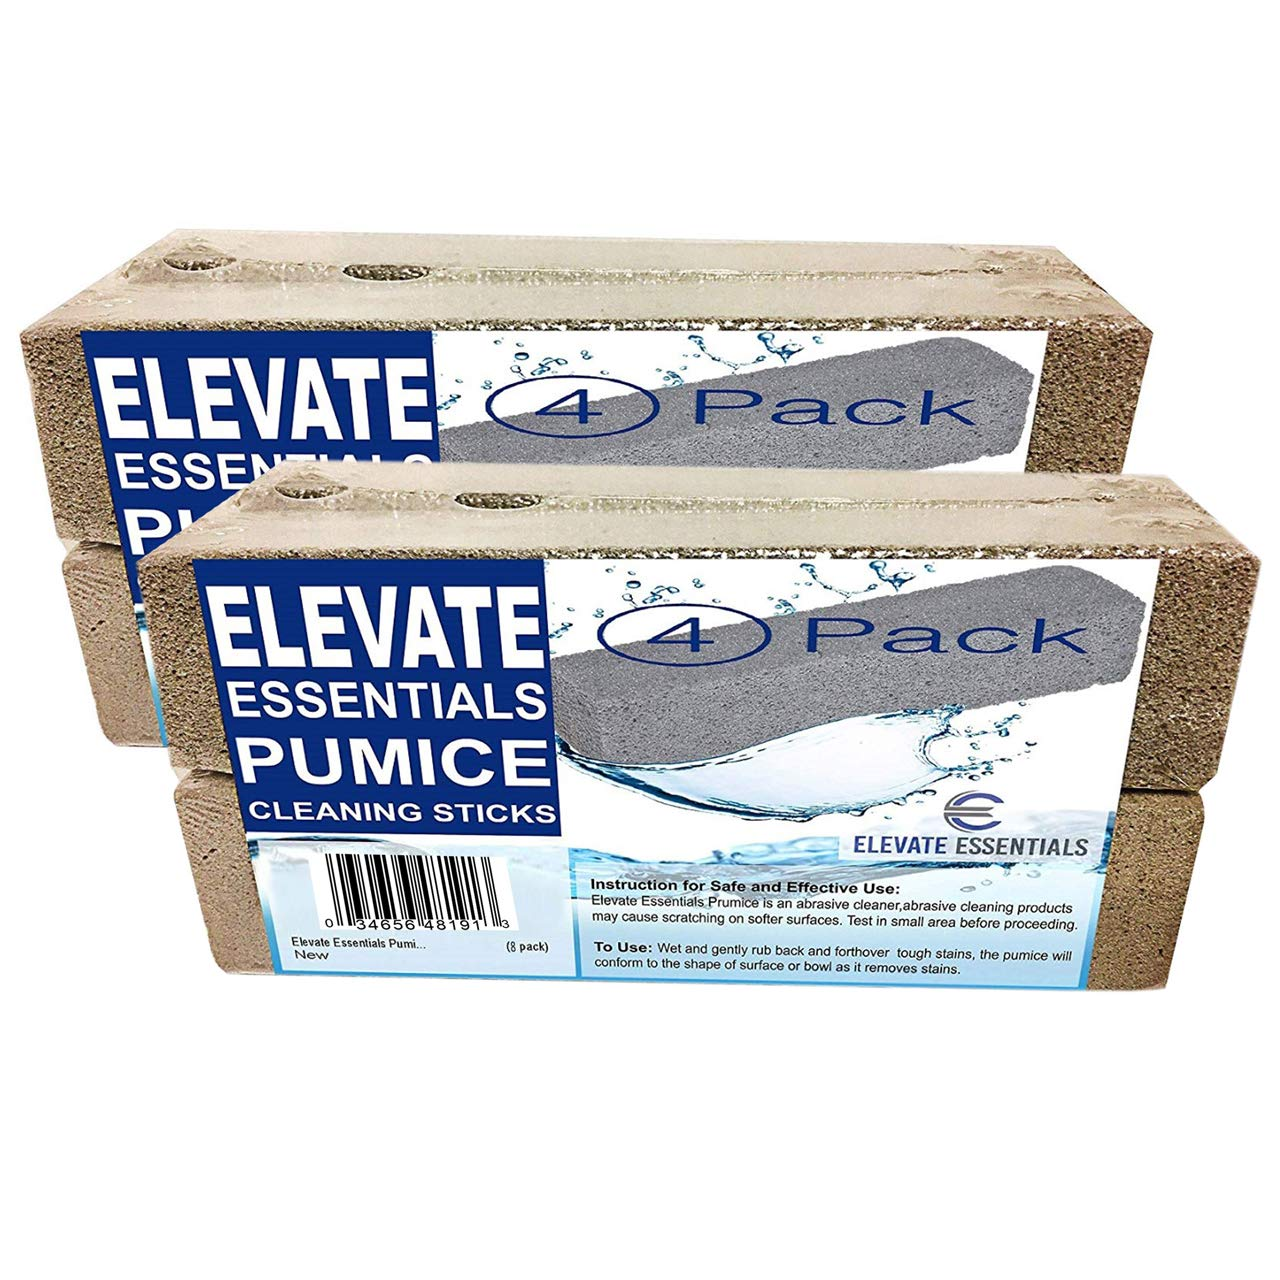 Elevate Essentials Pumice Stone Toilet Bowl Cleaner - 8 Pack of Heavy Duty Pumice Stones Cut into Sticks- Pool Pumice Stone Tile Cleaner - Works to Removes Rust from Bath Tub - Natural Product